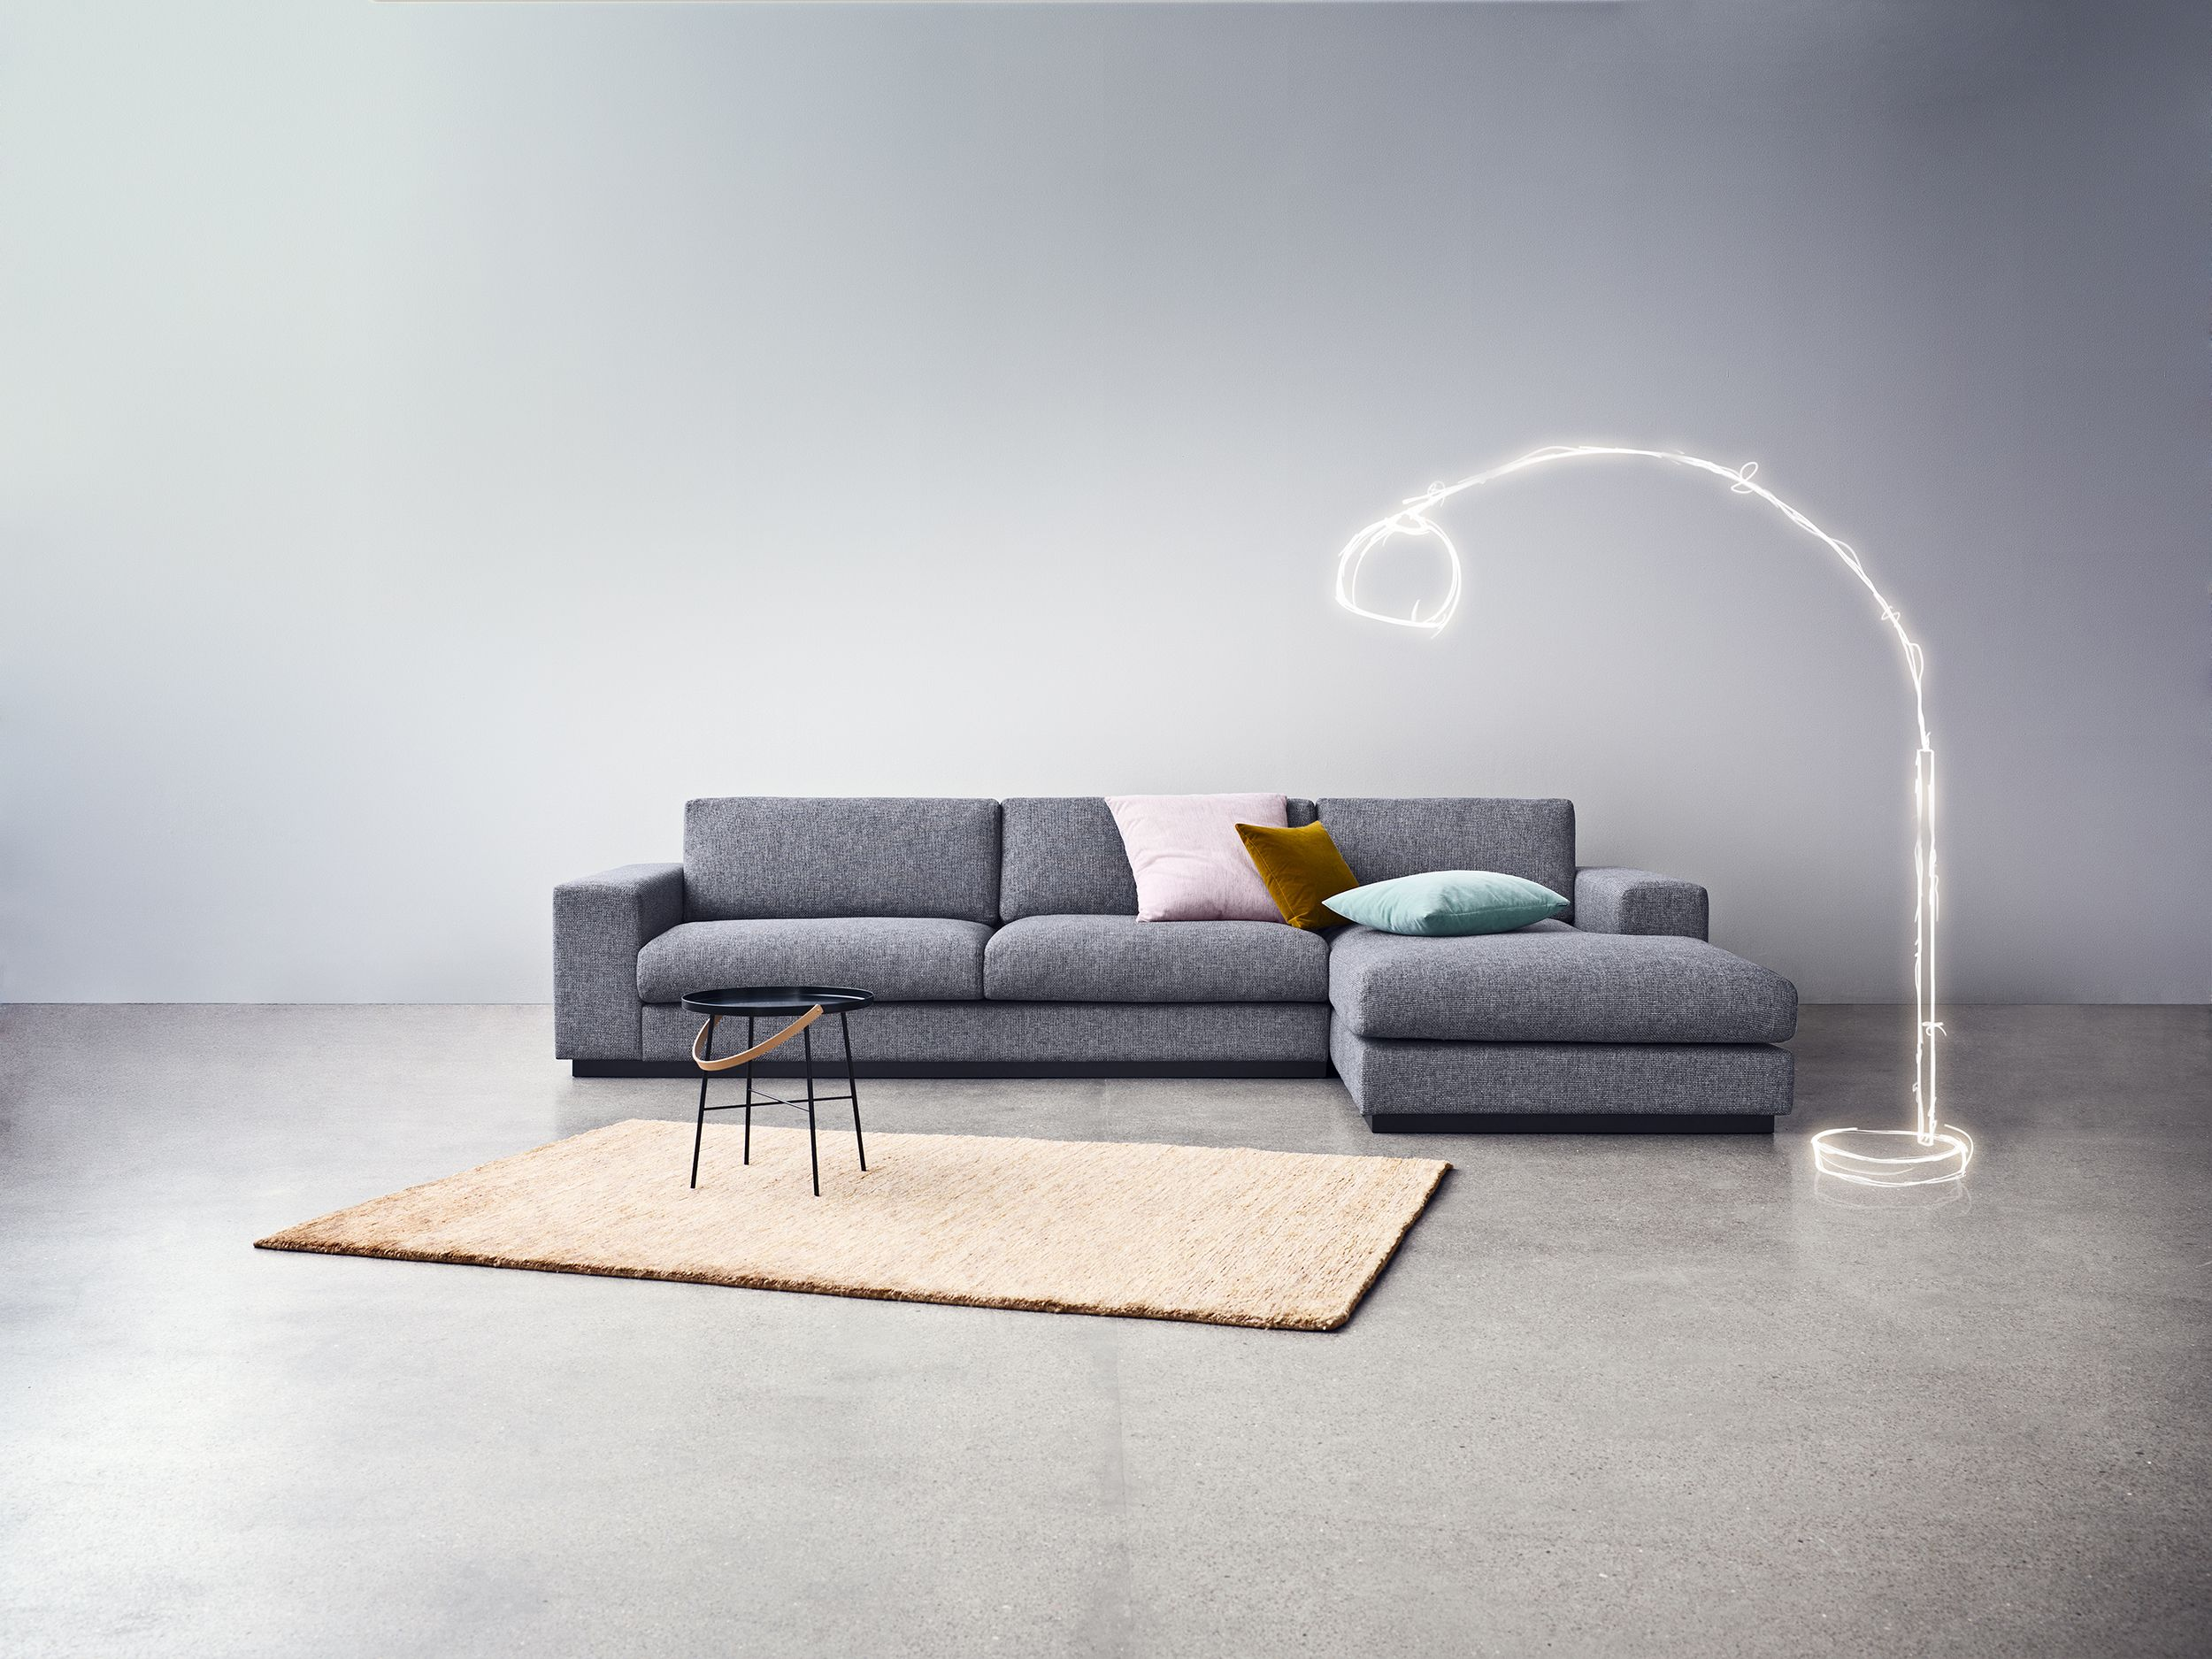 bolia scandinavia sofa nantes multi grey Googlesk Interior